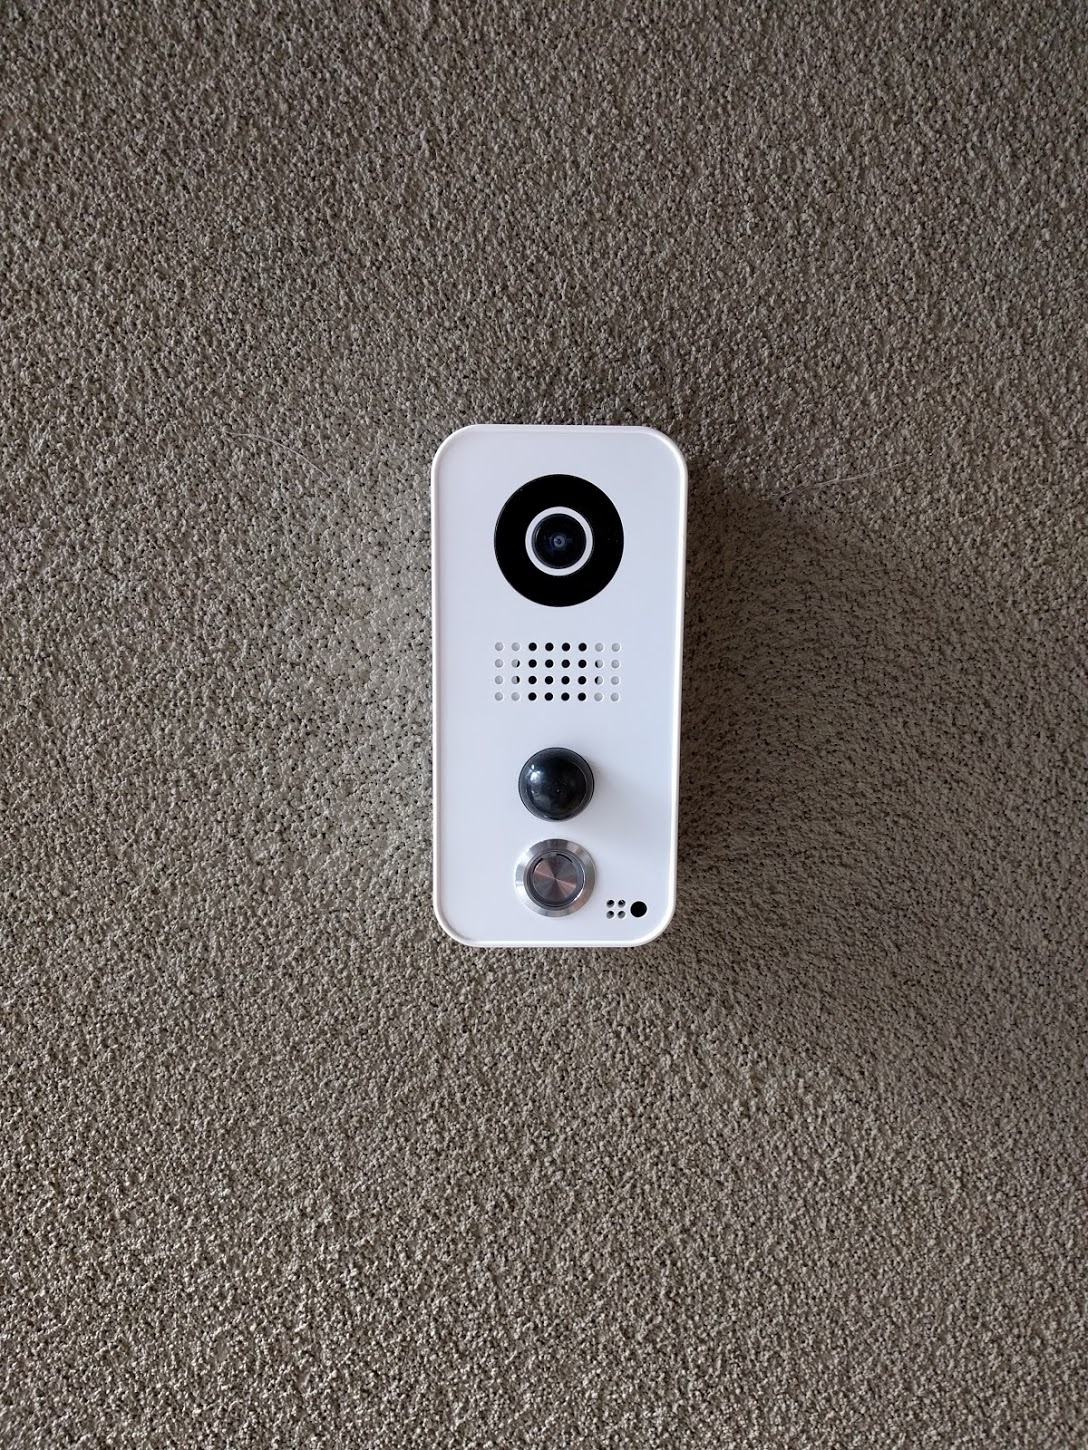 Install Report Doorbird Internet Connected Video Doorbell Skybell Wiring Diagram The Big And Very Positive Discovery For Me Is That Doorbirds Main Poe Connection Only Used 4 Of 8 Cat 5 Wires This Not Documented In Any